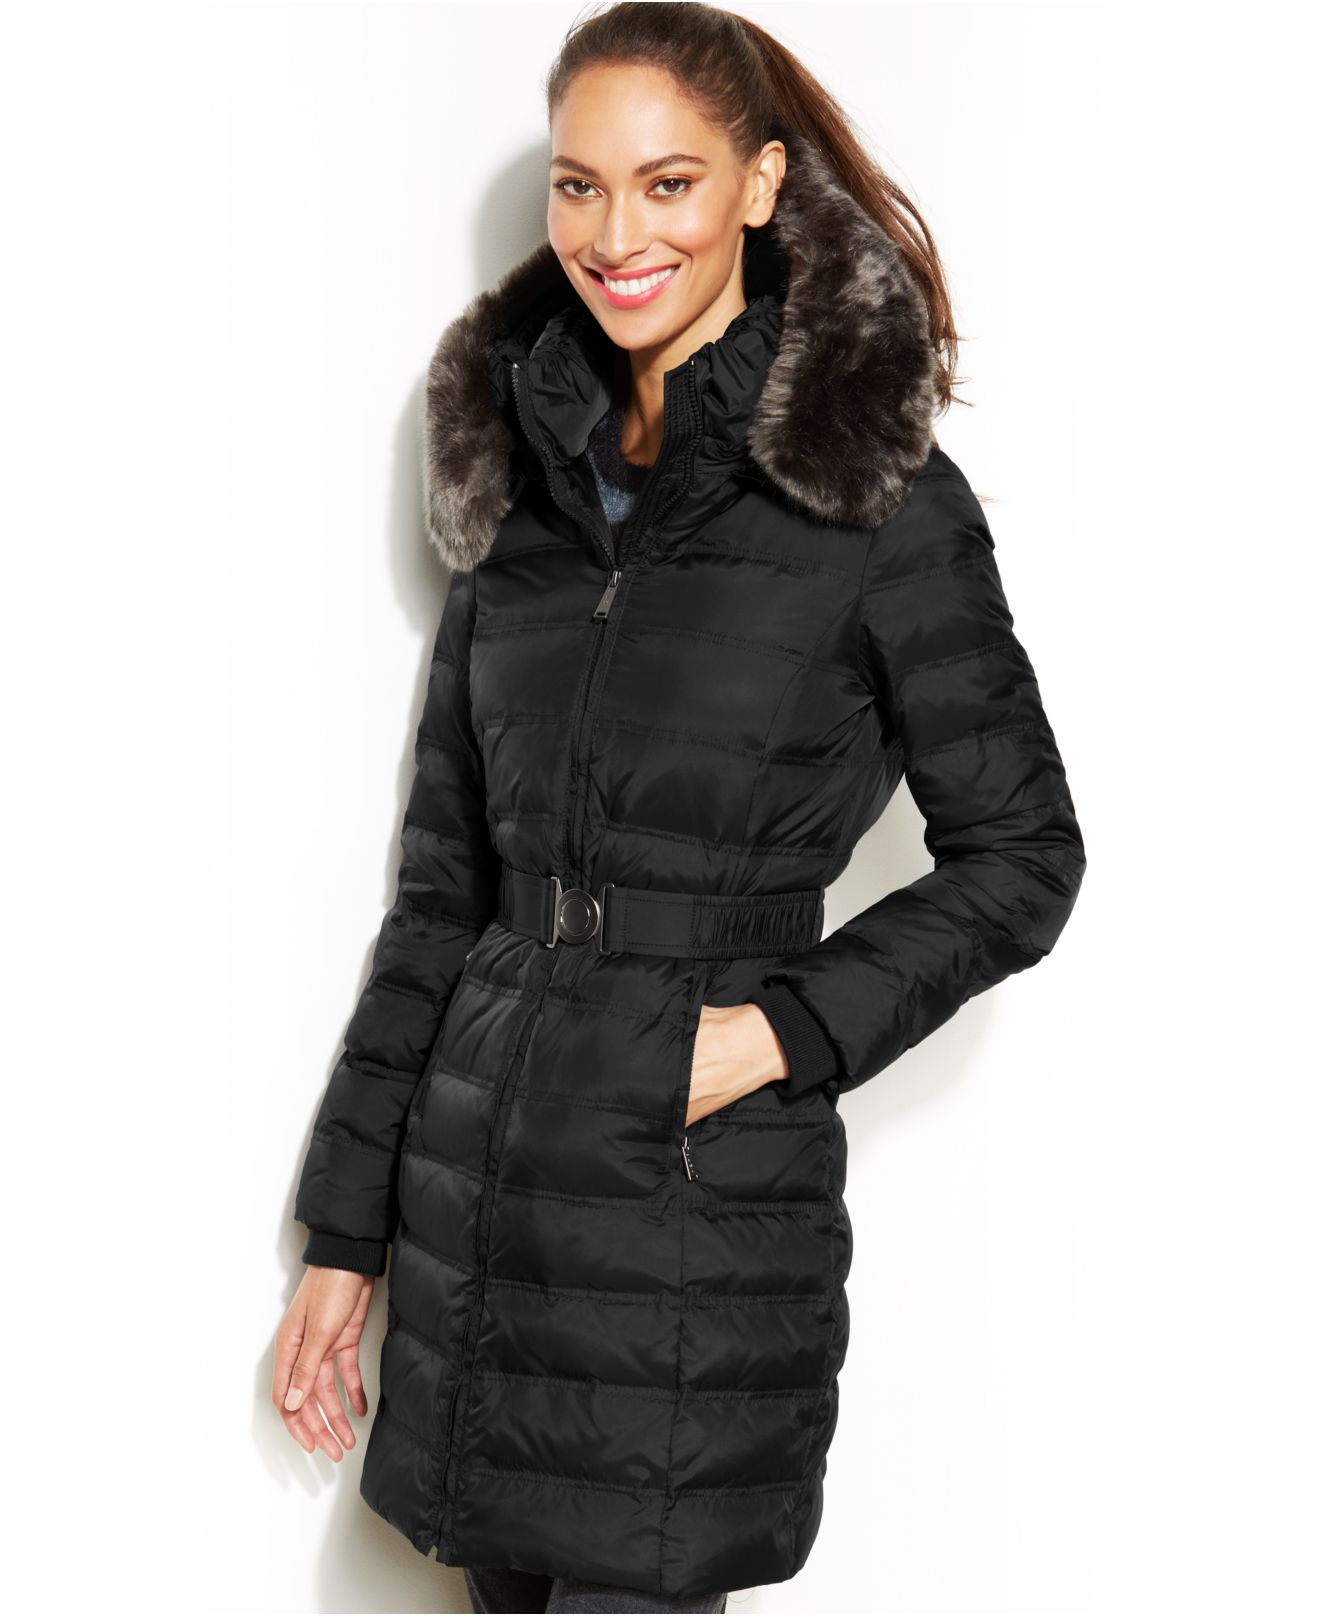 Collection Black Puffer Coat With Fur Hood Pictures - Reikian